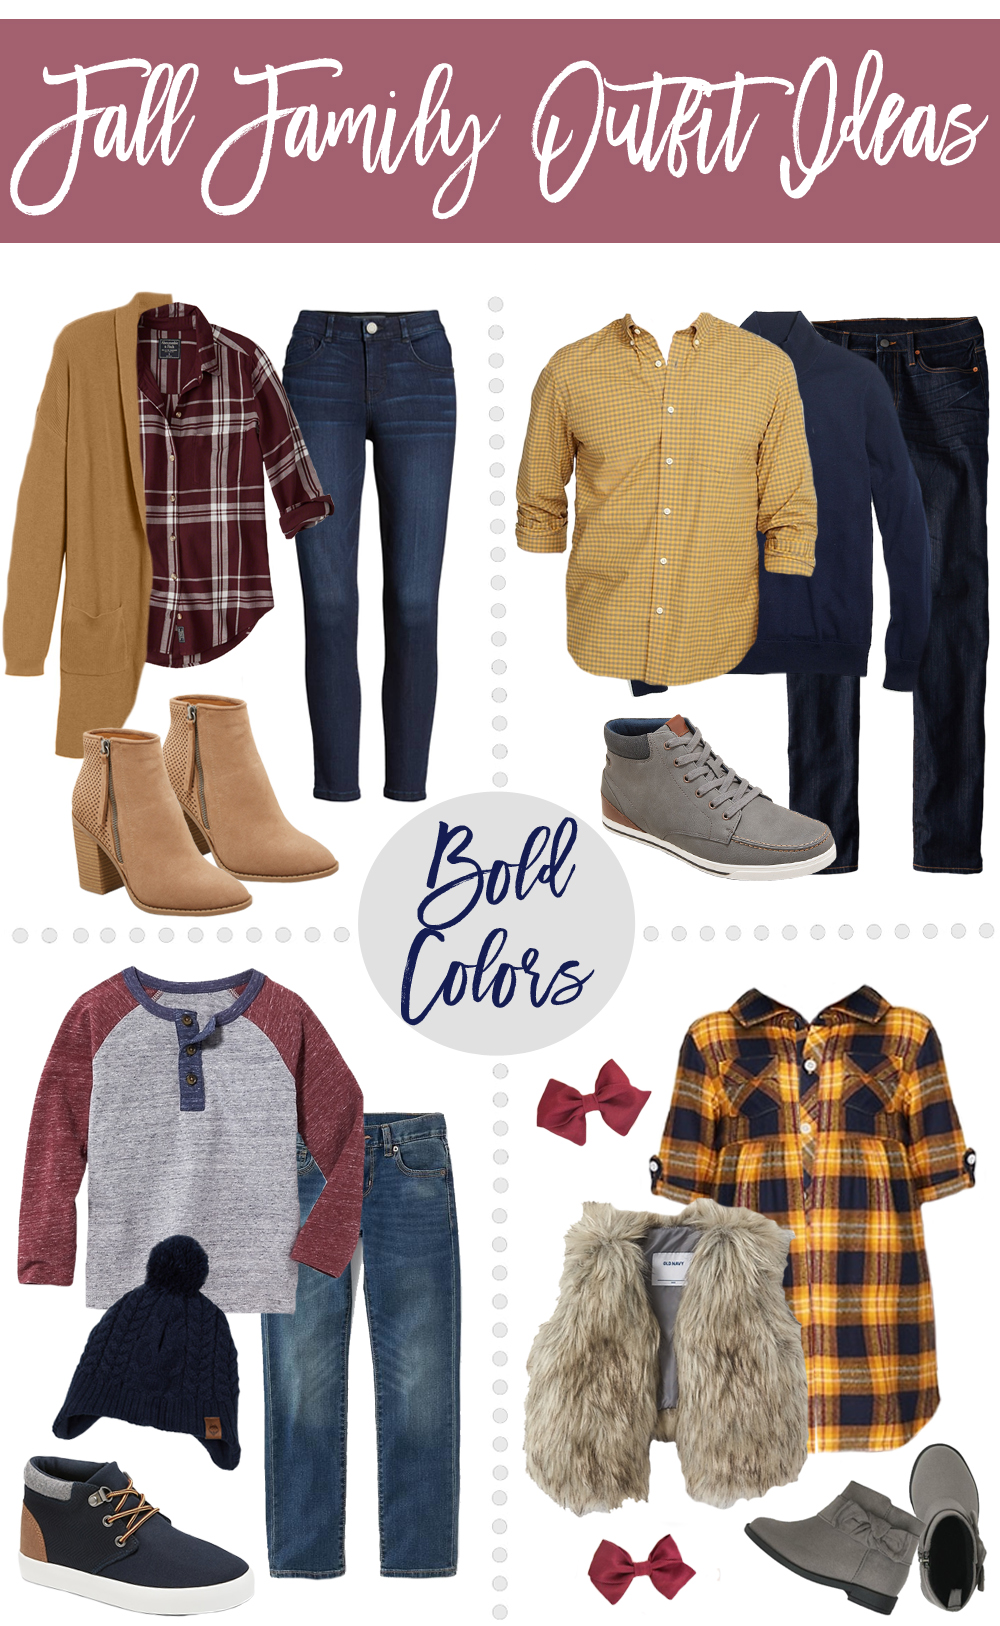 68a04f0cf36 Fall Family Outfit Ideas - Bold Color   Neutral Color Options ...